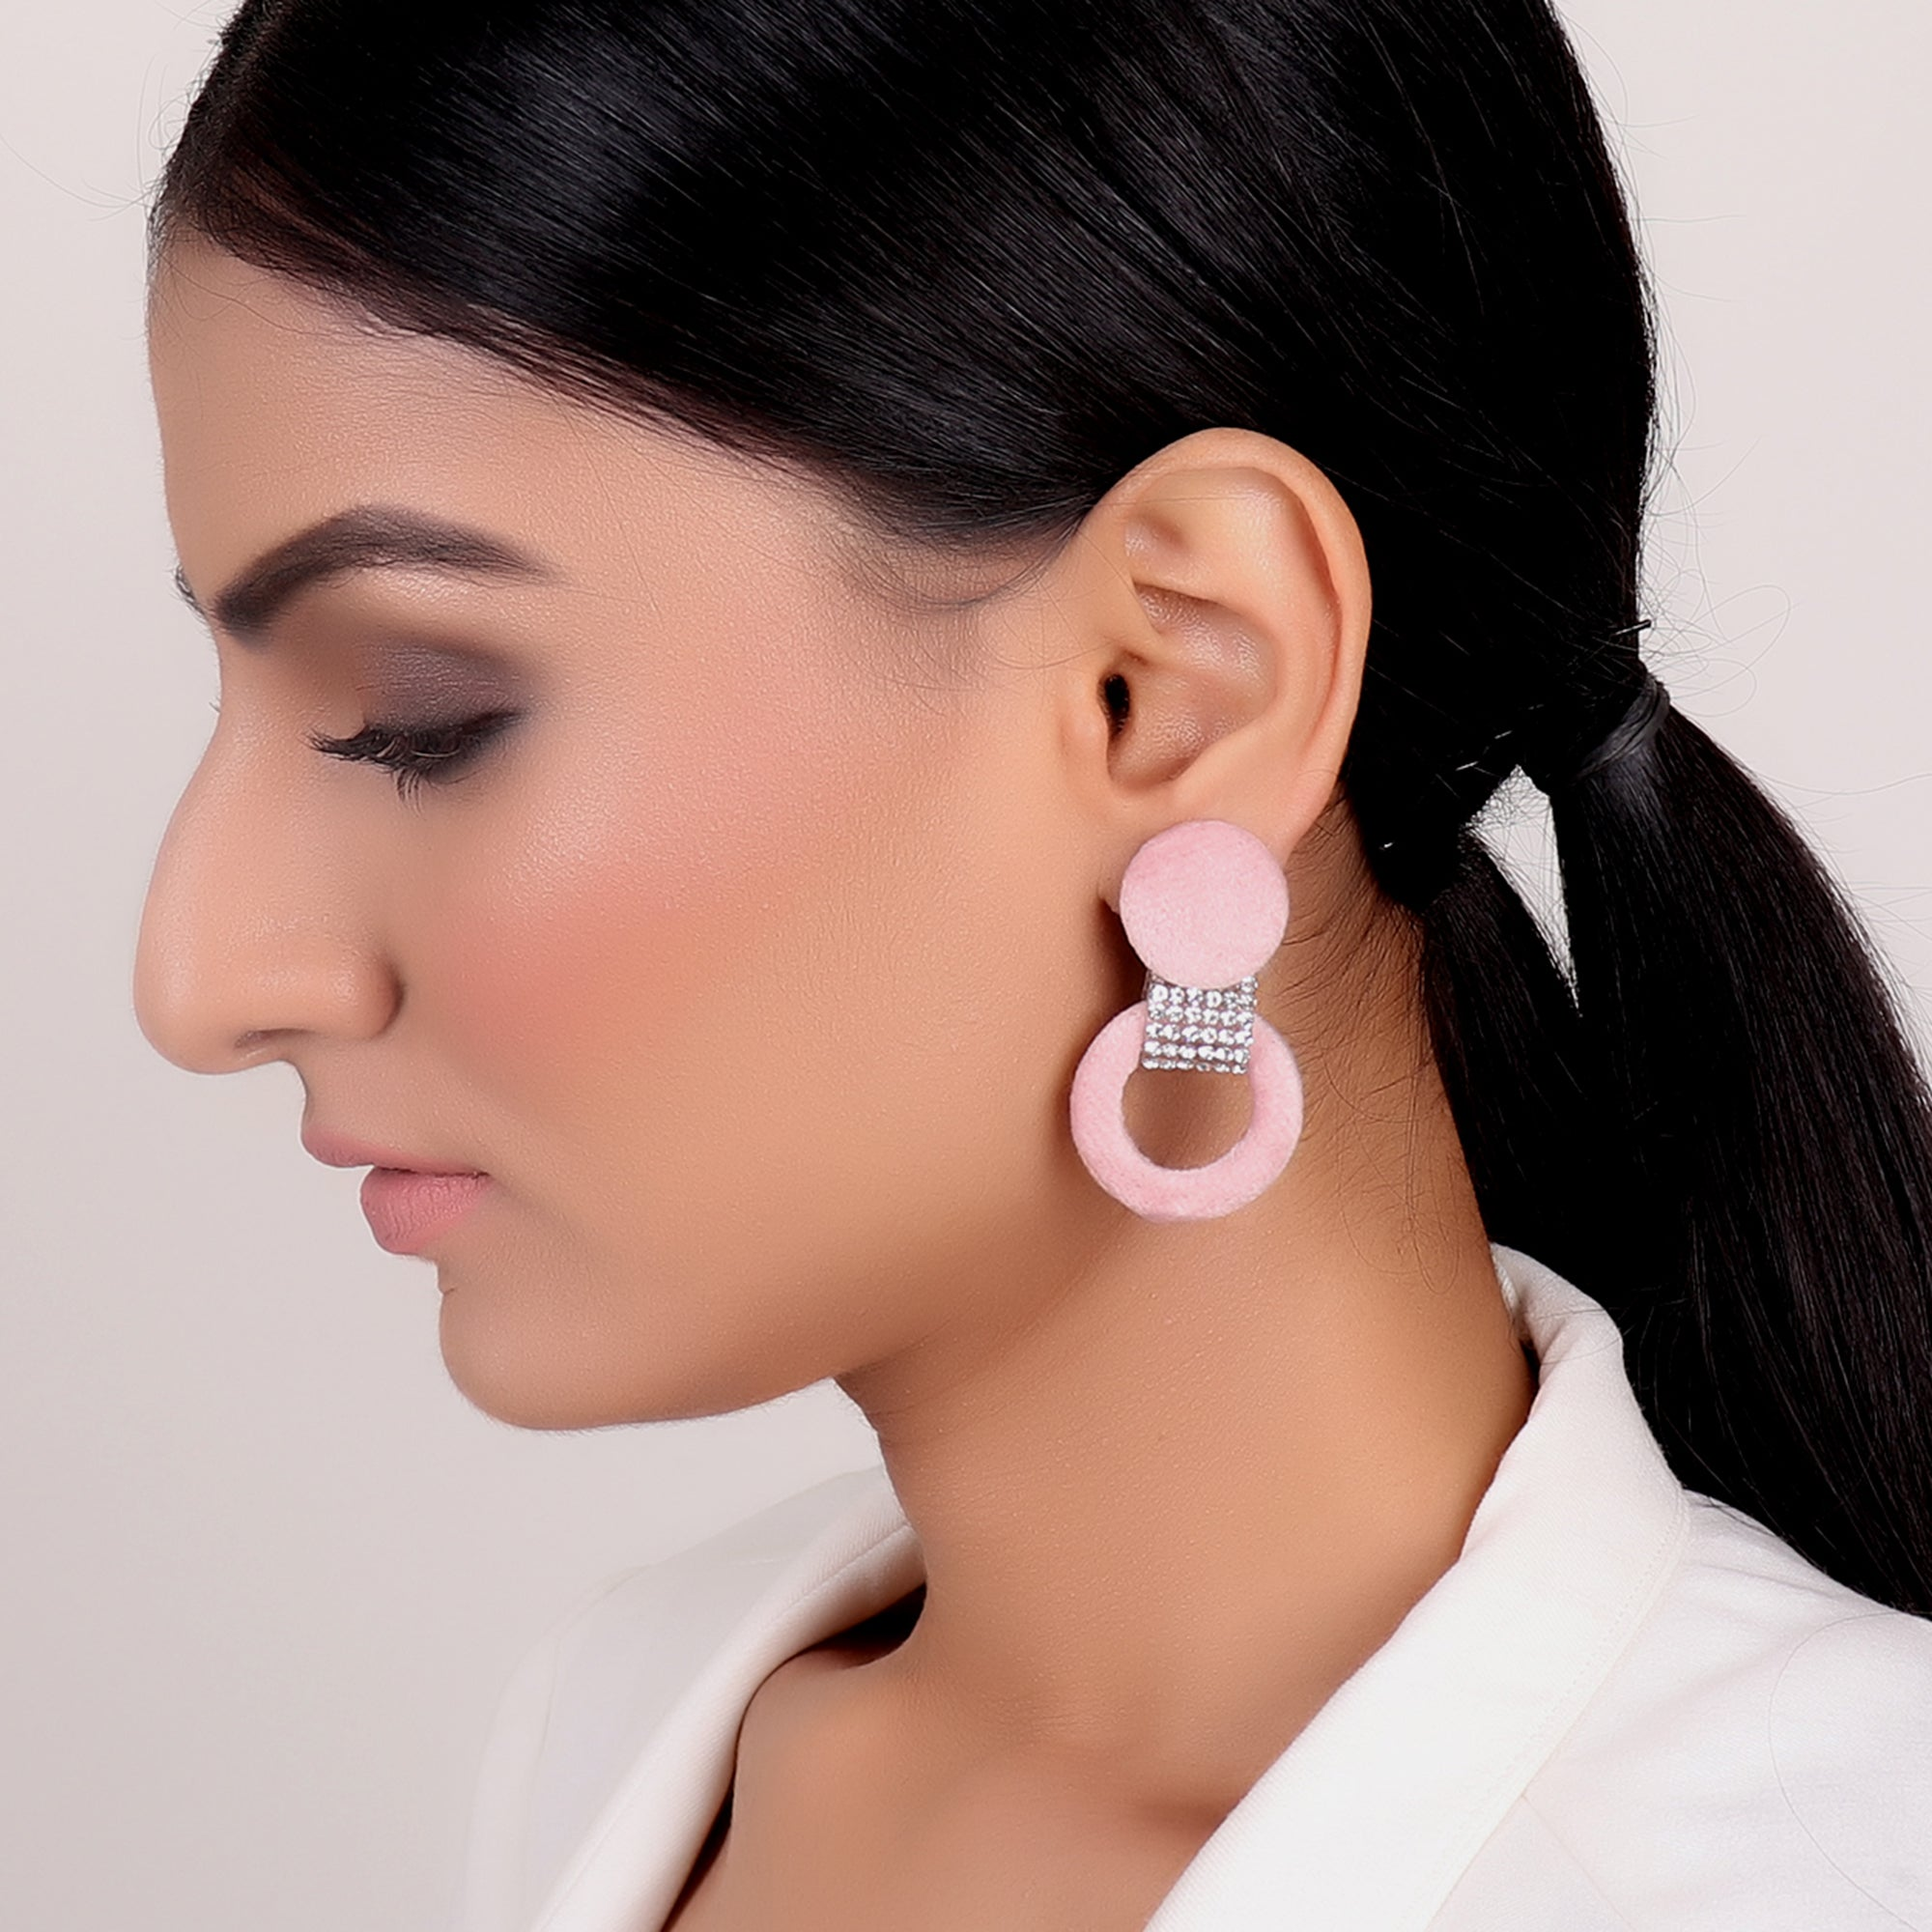 Earrings,Infinity Loop fashion Earrings in Pink - Cippele Multi Store